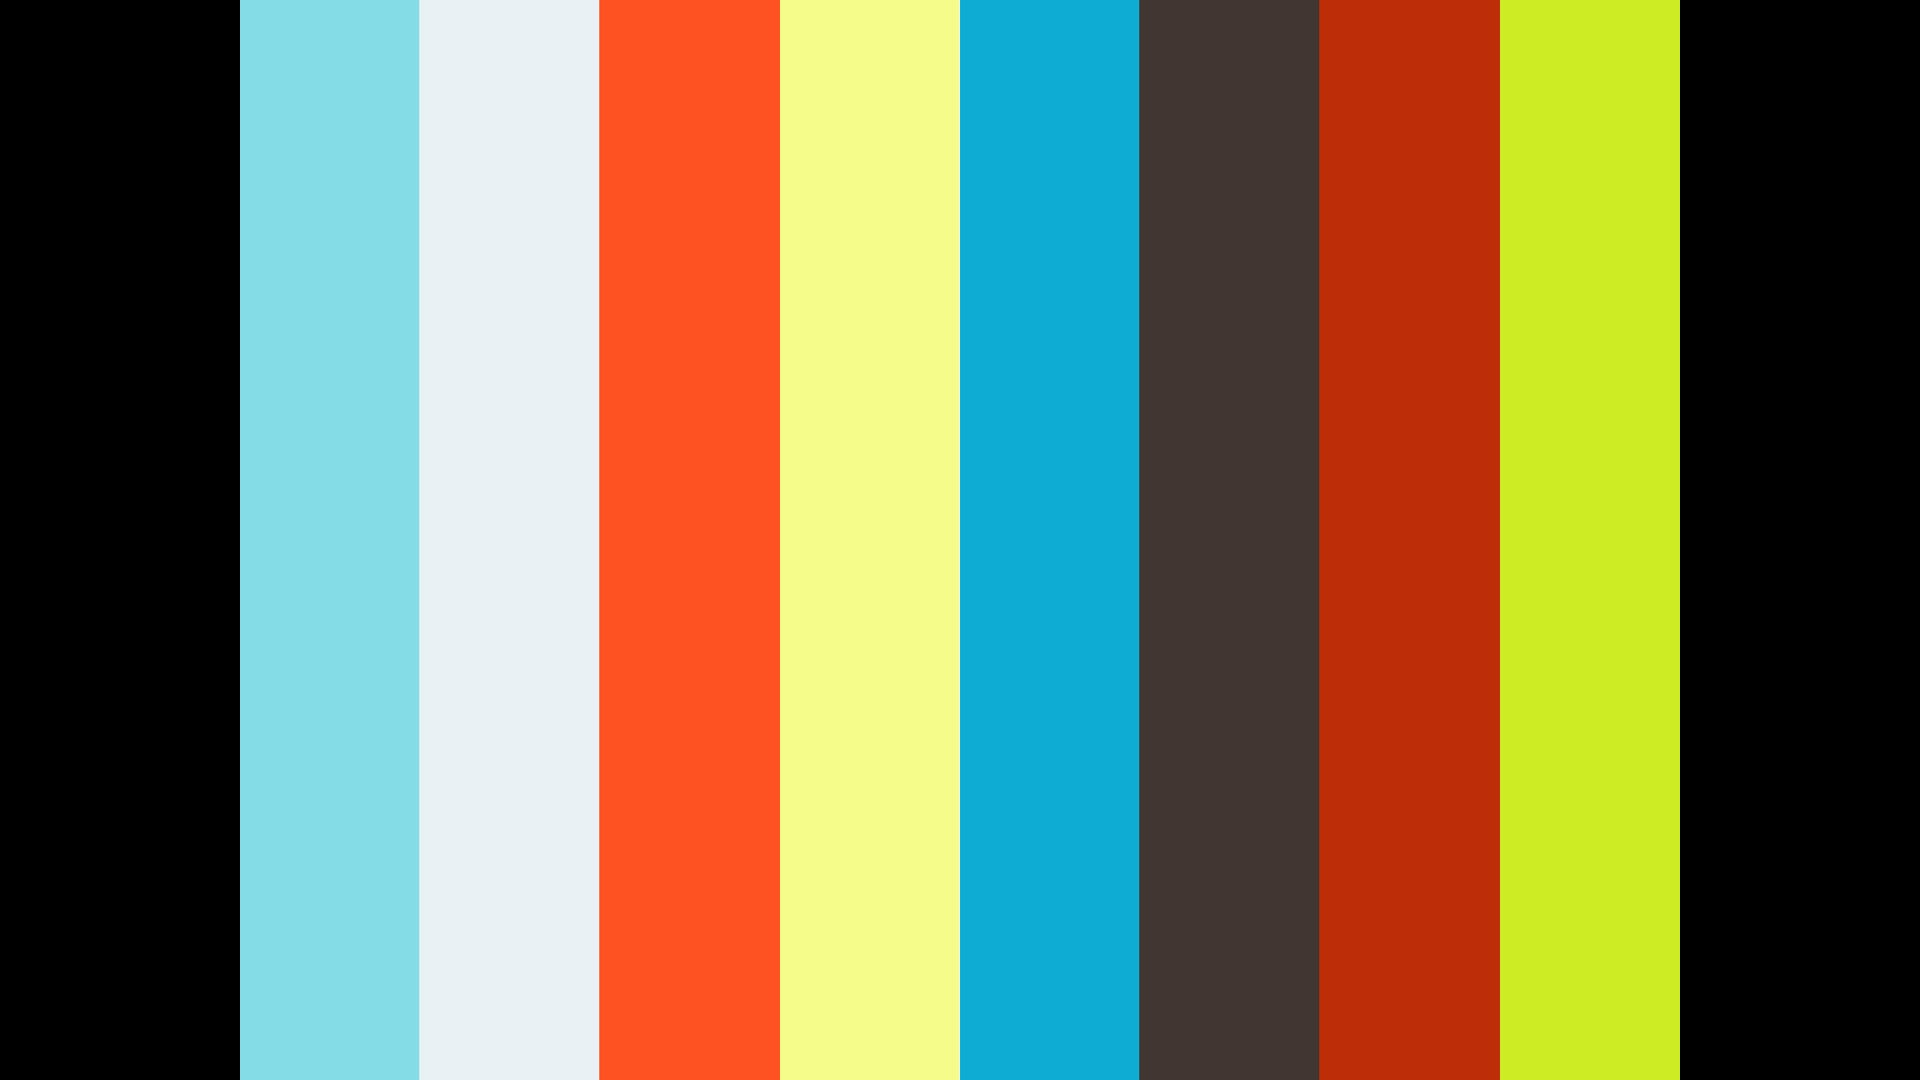 Vídeos Scribe / Whiteboard: sus cinco principales ventajas | Videocontent Tu vídeo desde 350€ | 1092649833 1920x1080 | videos-explicativos, videos-de-producto, videos-de-empresas, videos-corporativos-videos, video, video-promocional, video-institucional, video-didactico, video-animacion, edicion-de-videos